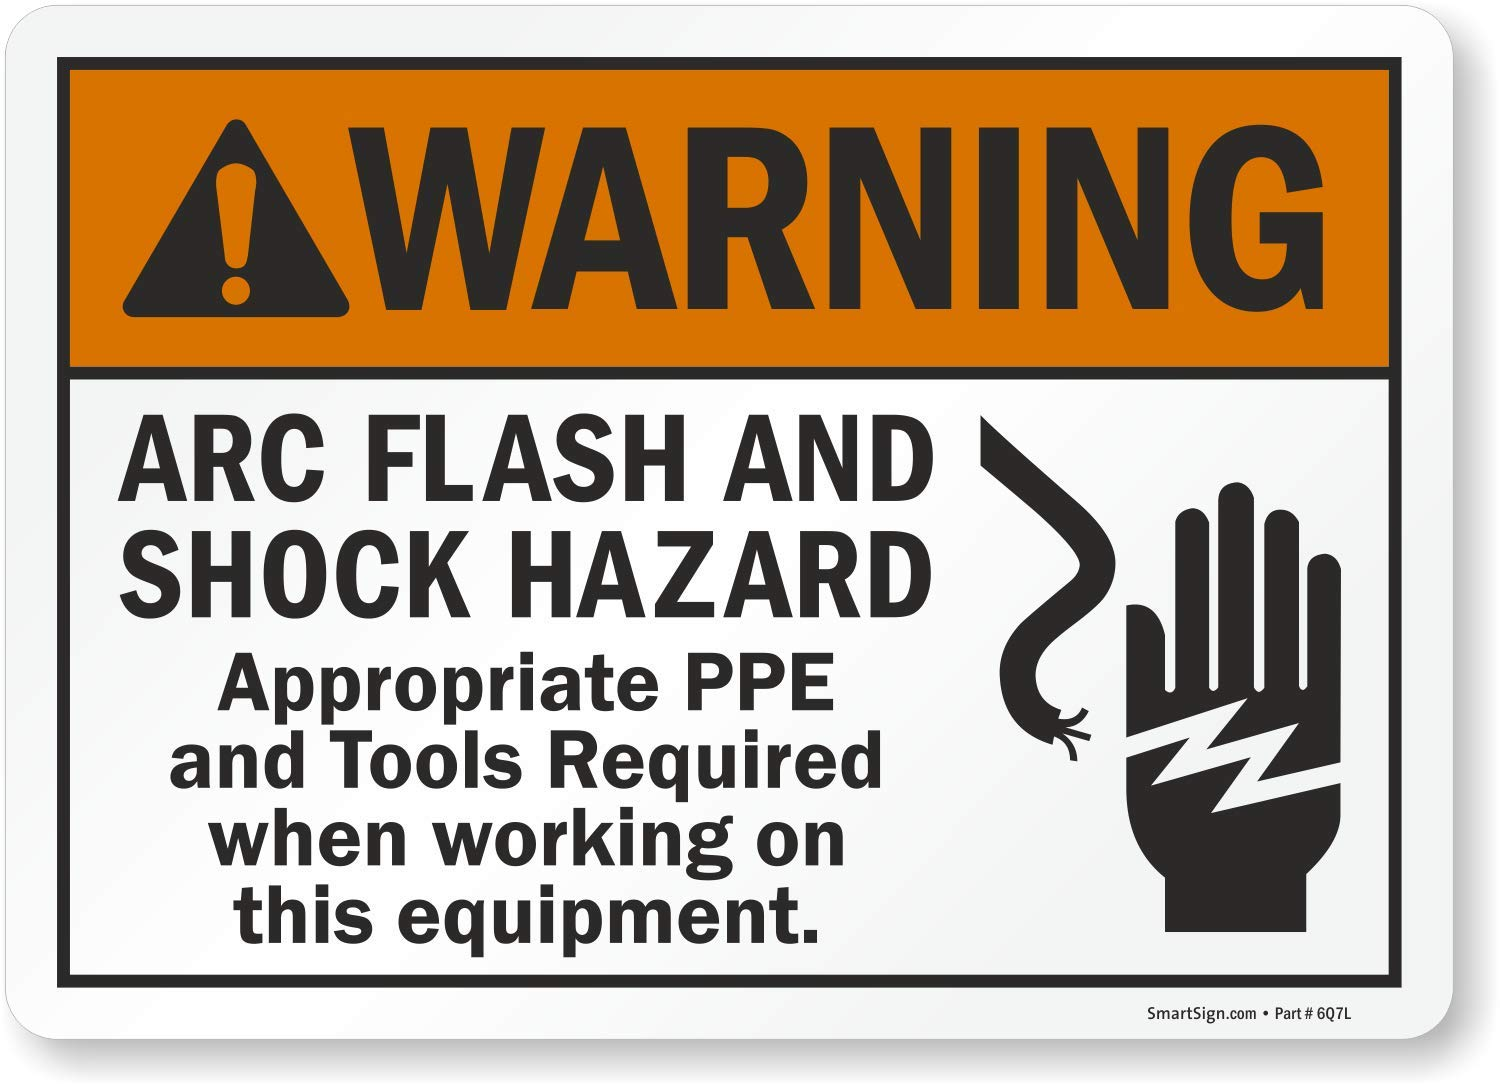 10 high x 14 wide Black//Orange on White SmartSign 3M Engineer Grade Reflective Label Legend Warning: Arc Flash and Shock Hazard PPE Required with Graphic